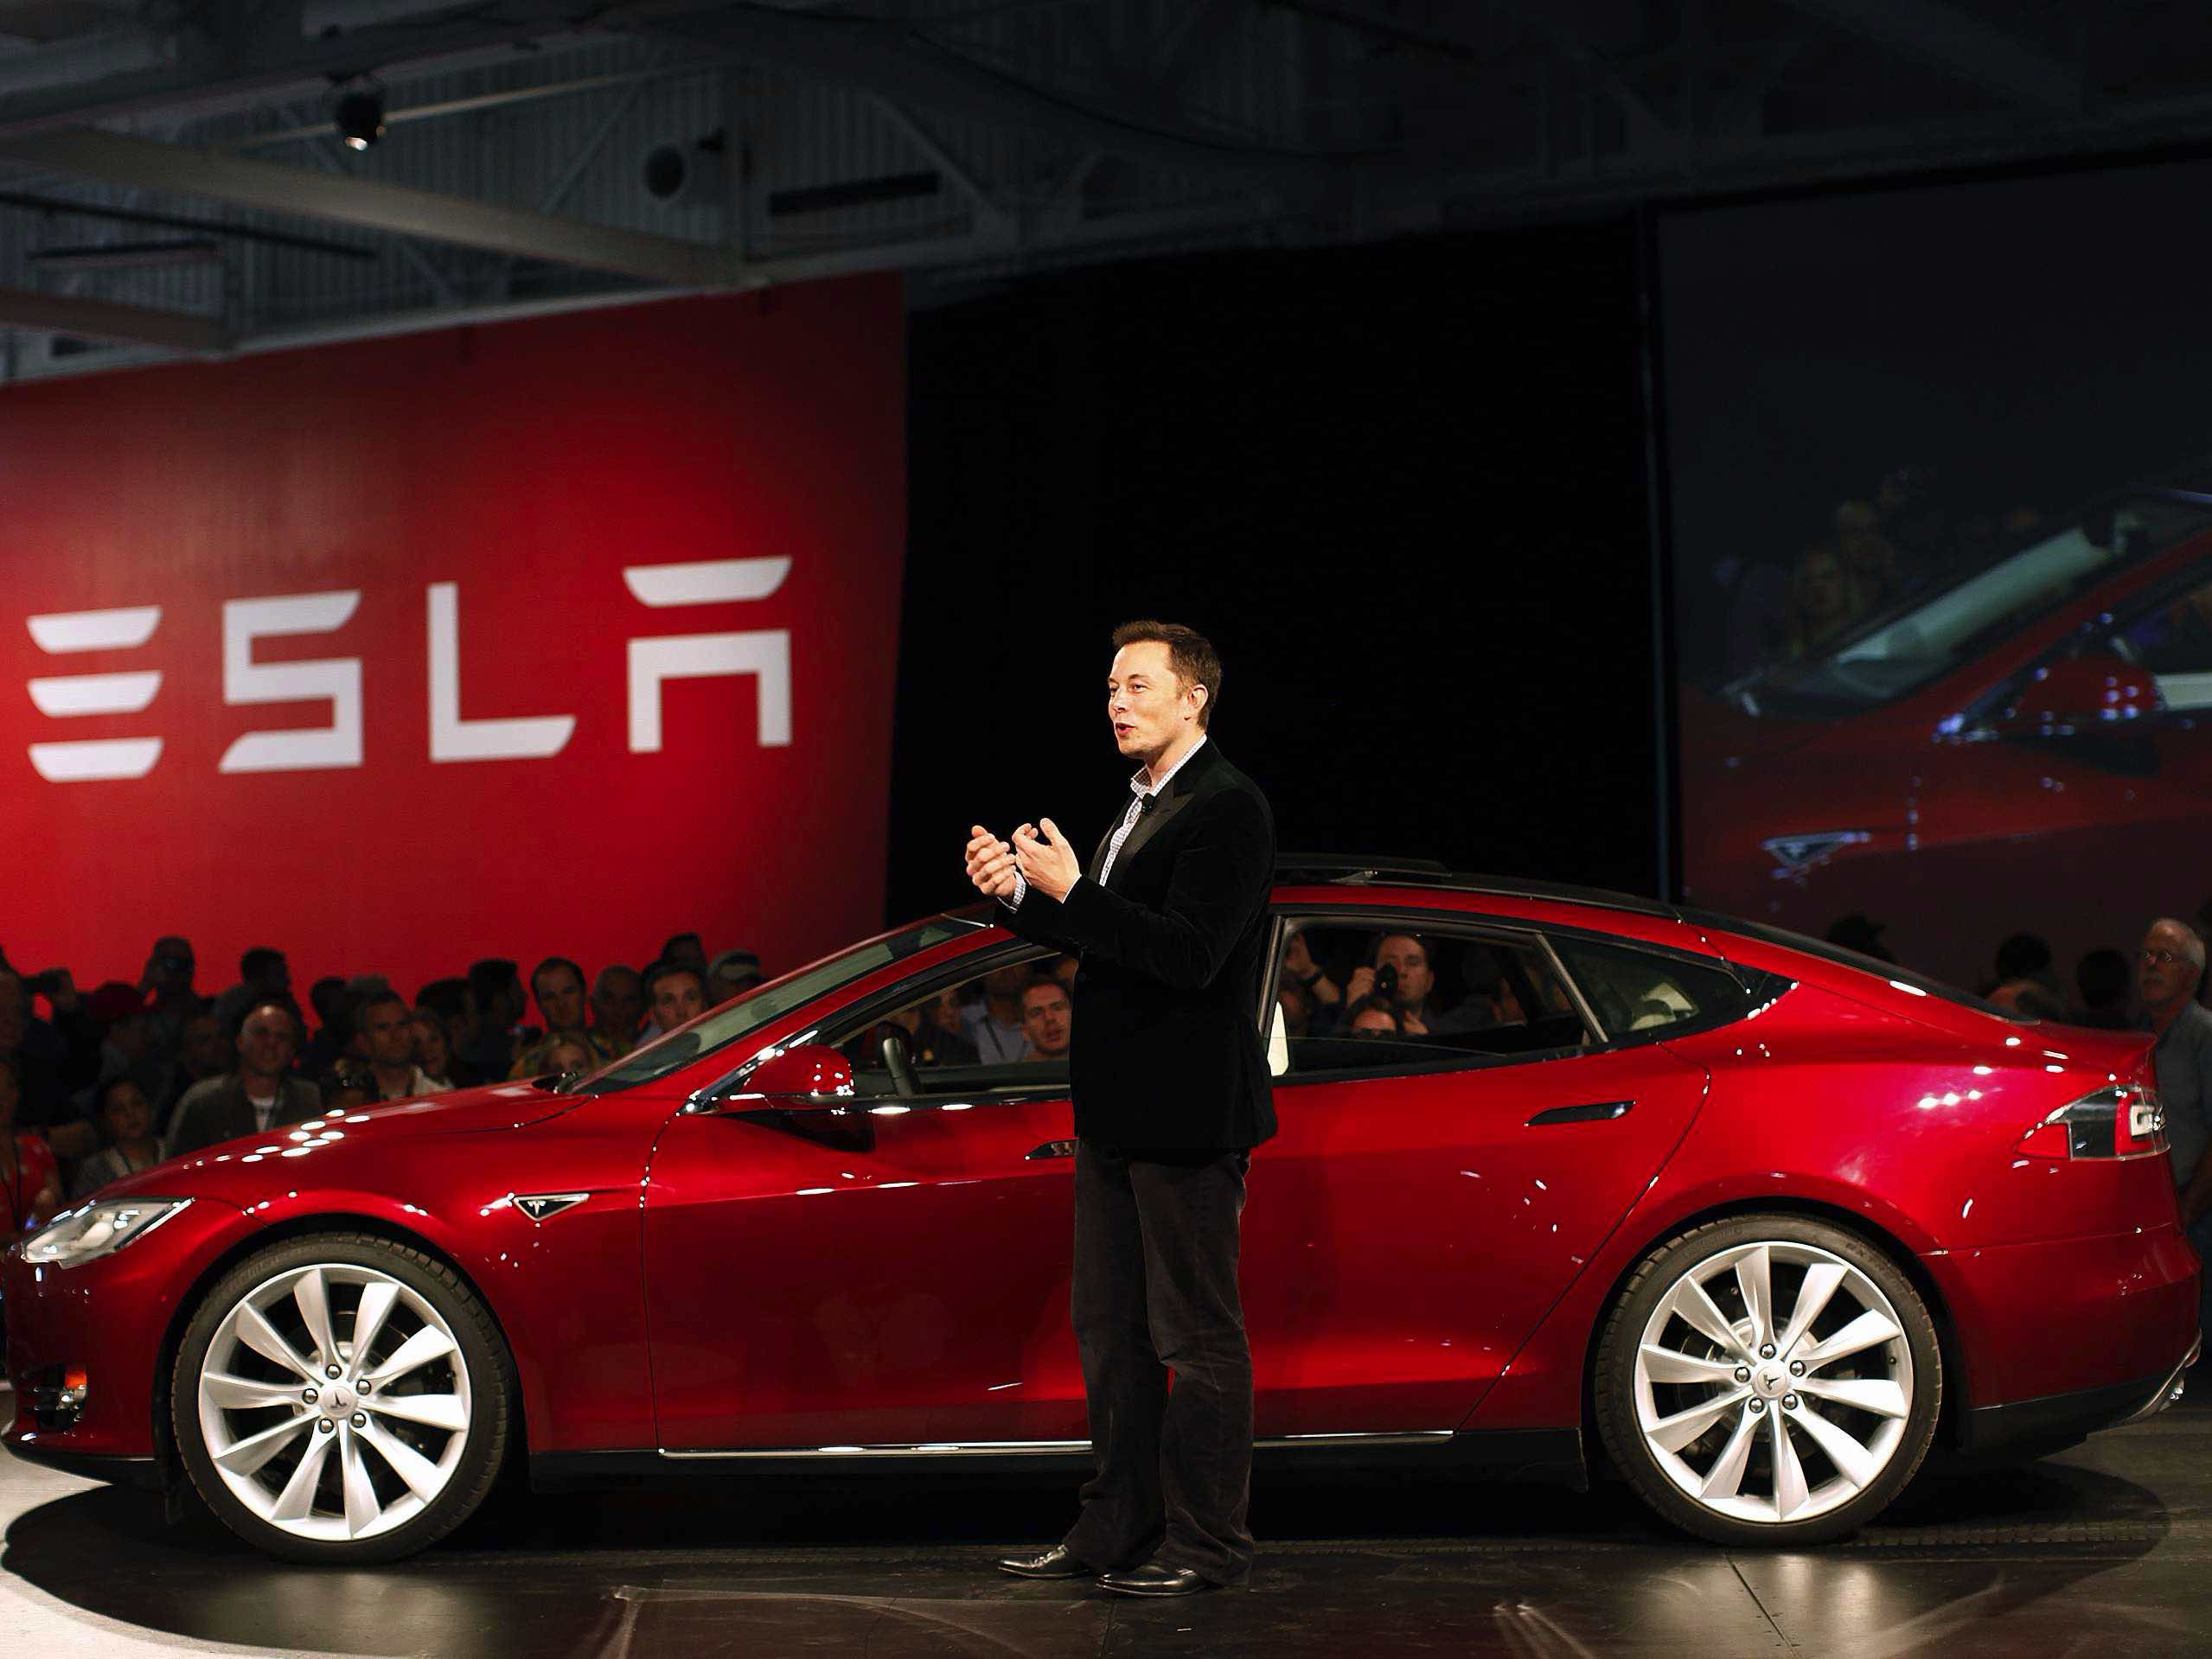 will-tesla-be-able-to-get-the-model-3-into-production-on-schedule